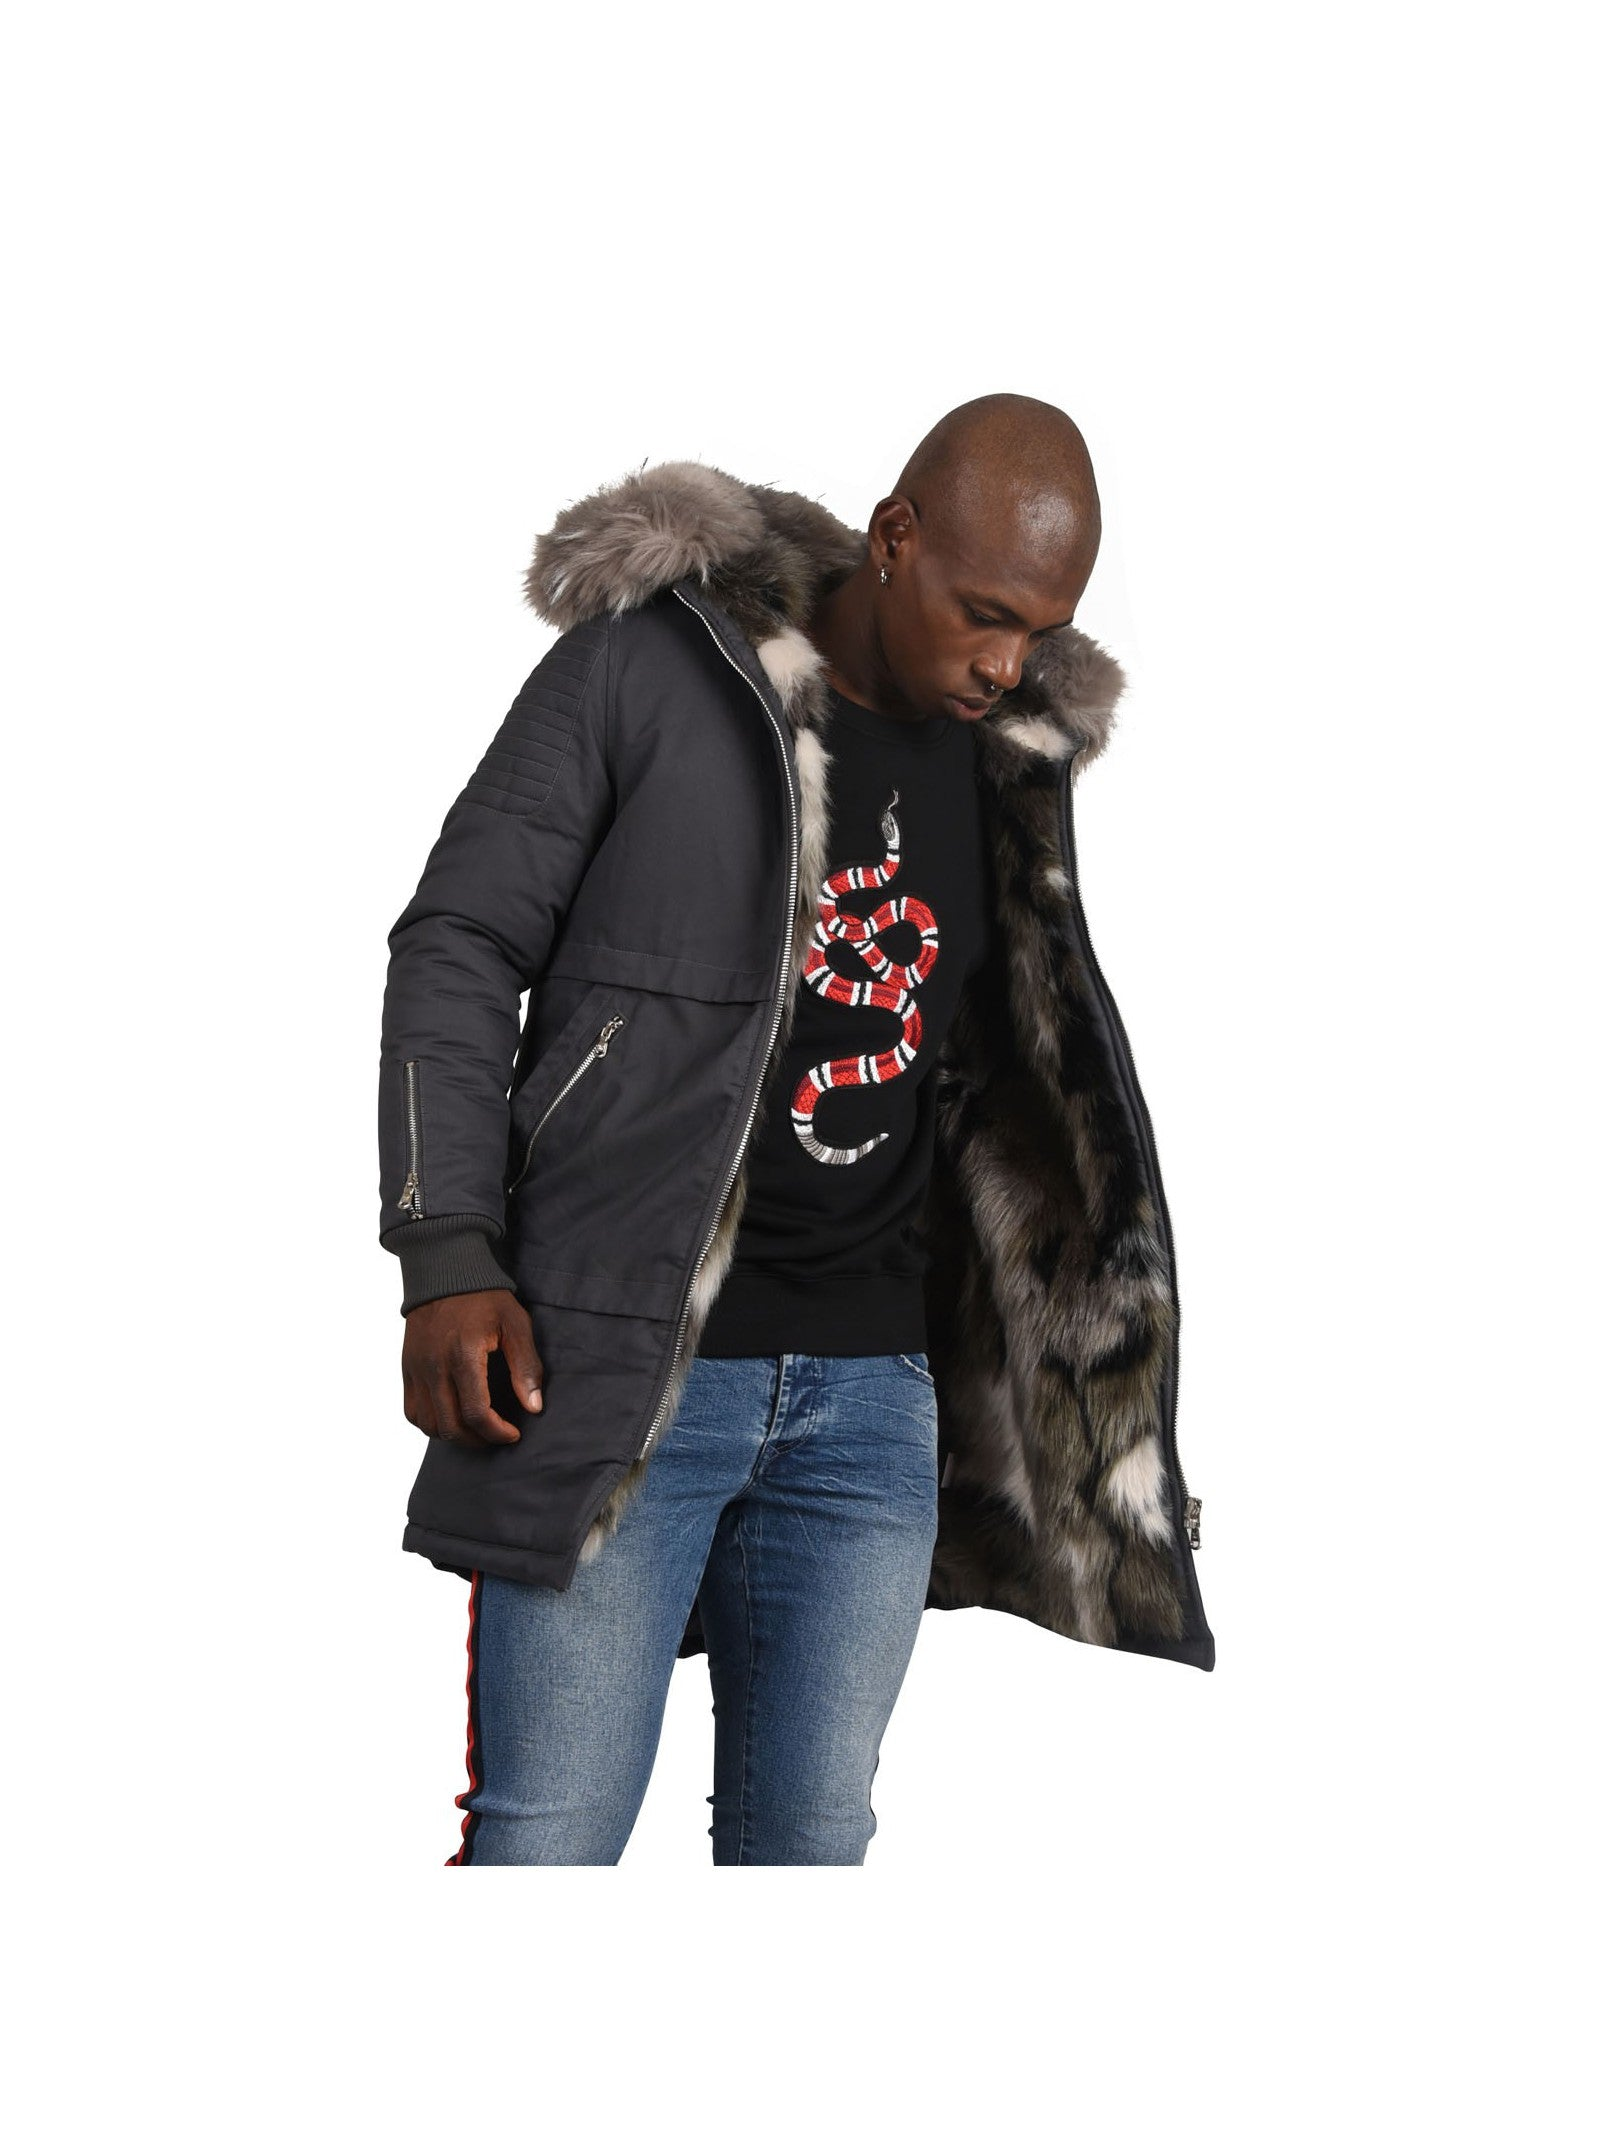 Men's Cotton Parka Grey Jacket Project X Paris - Brit Boss